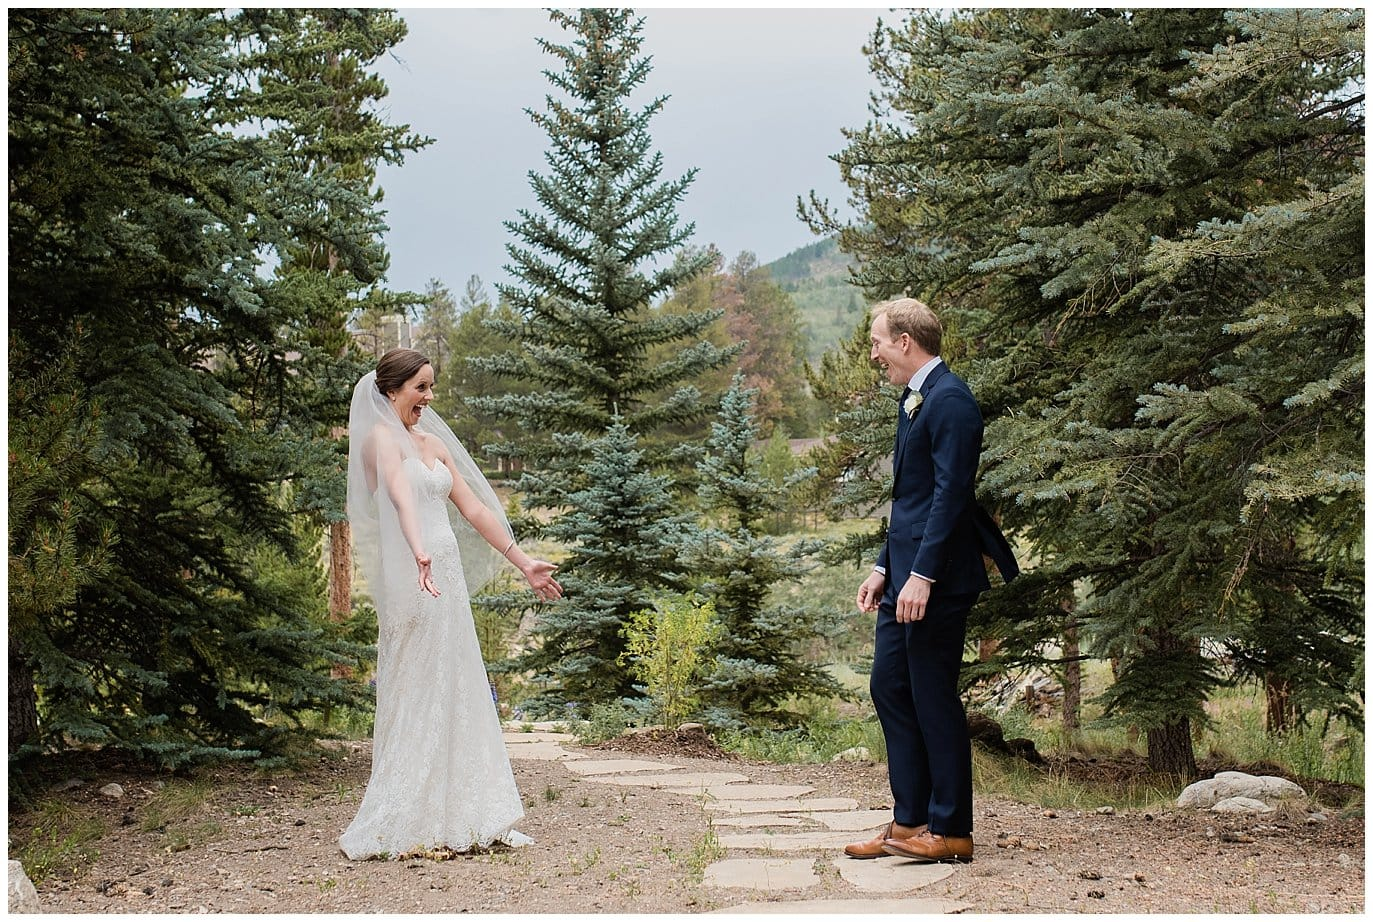 excited first look between bride and groom at Arapahoe Basin Black Mountain Lodge Wedding by Breckenridge Wedding Photographer Jennie Crate